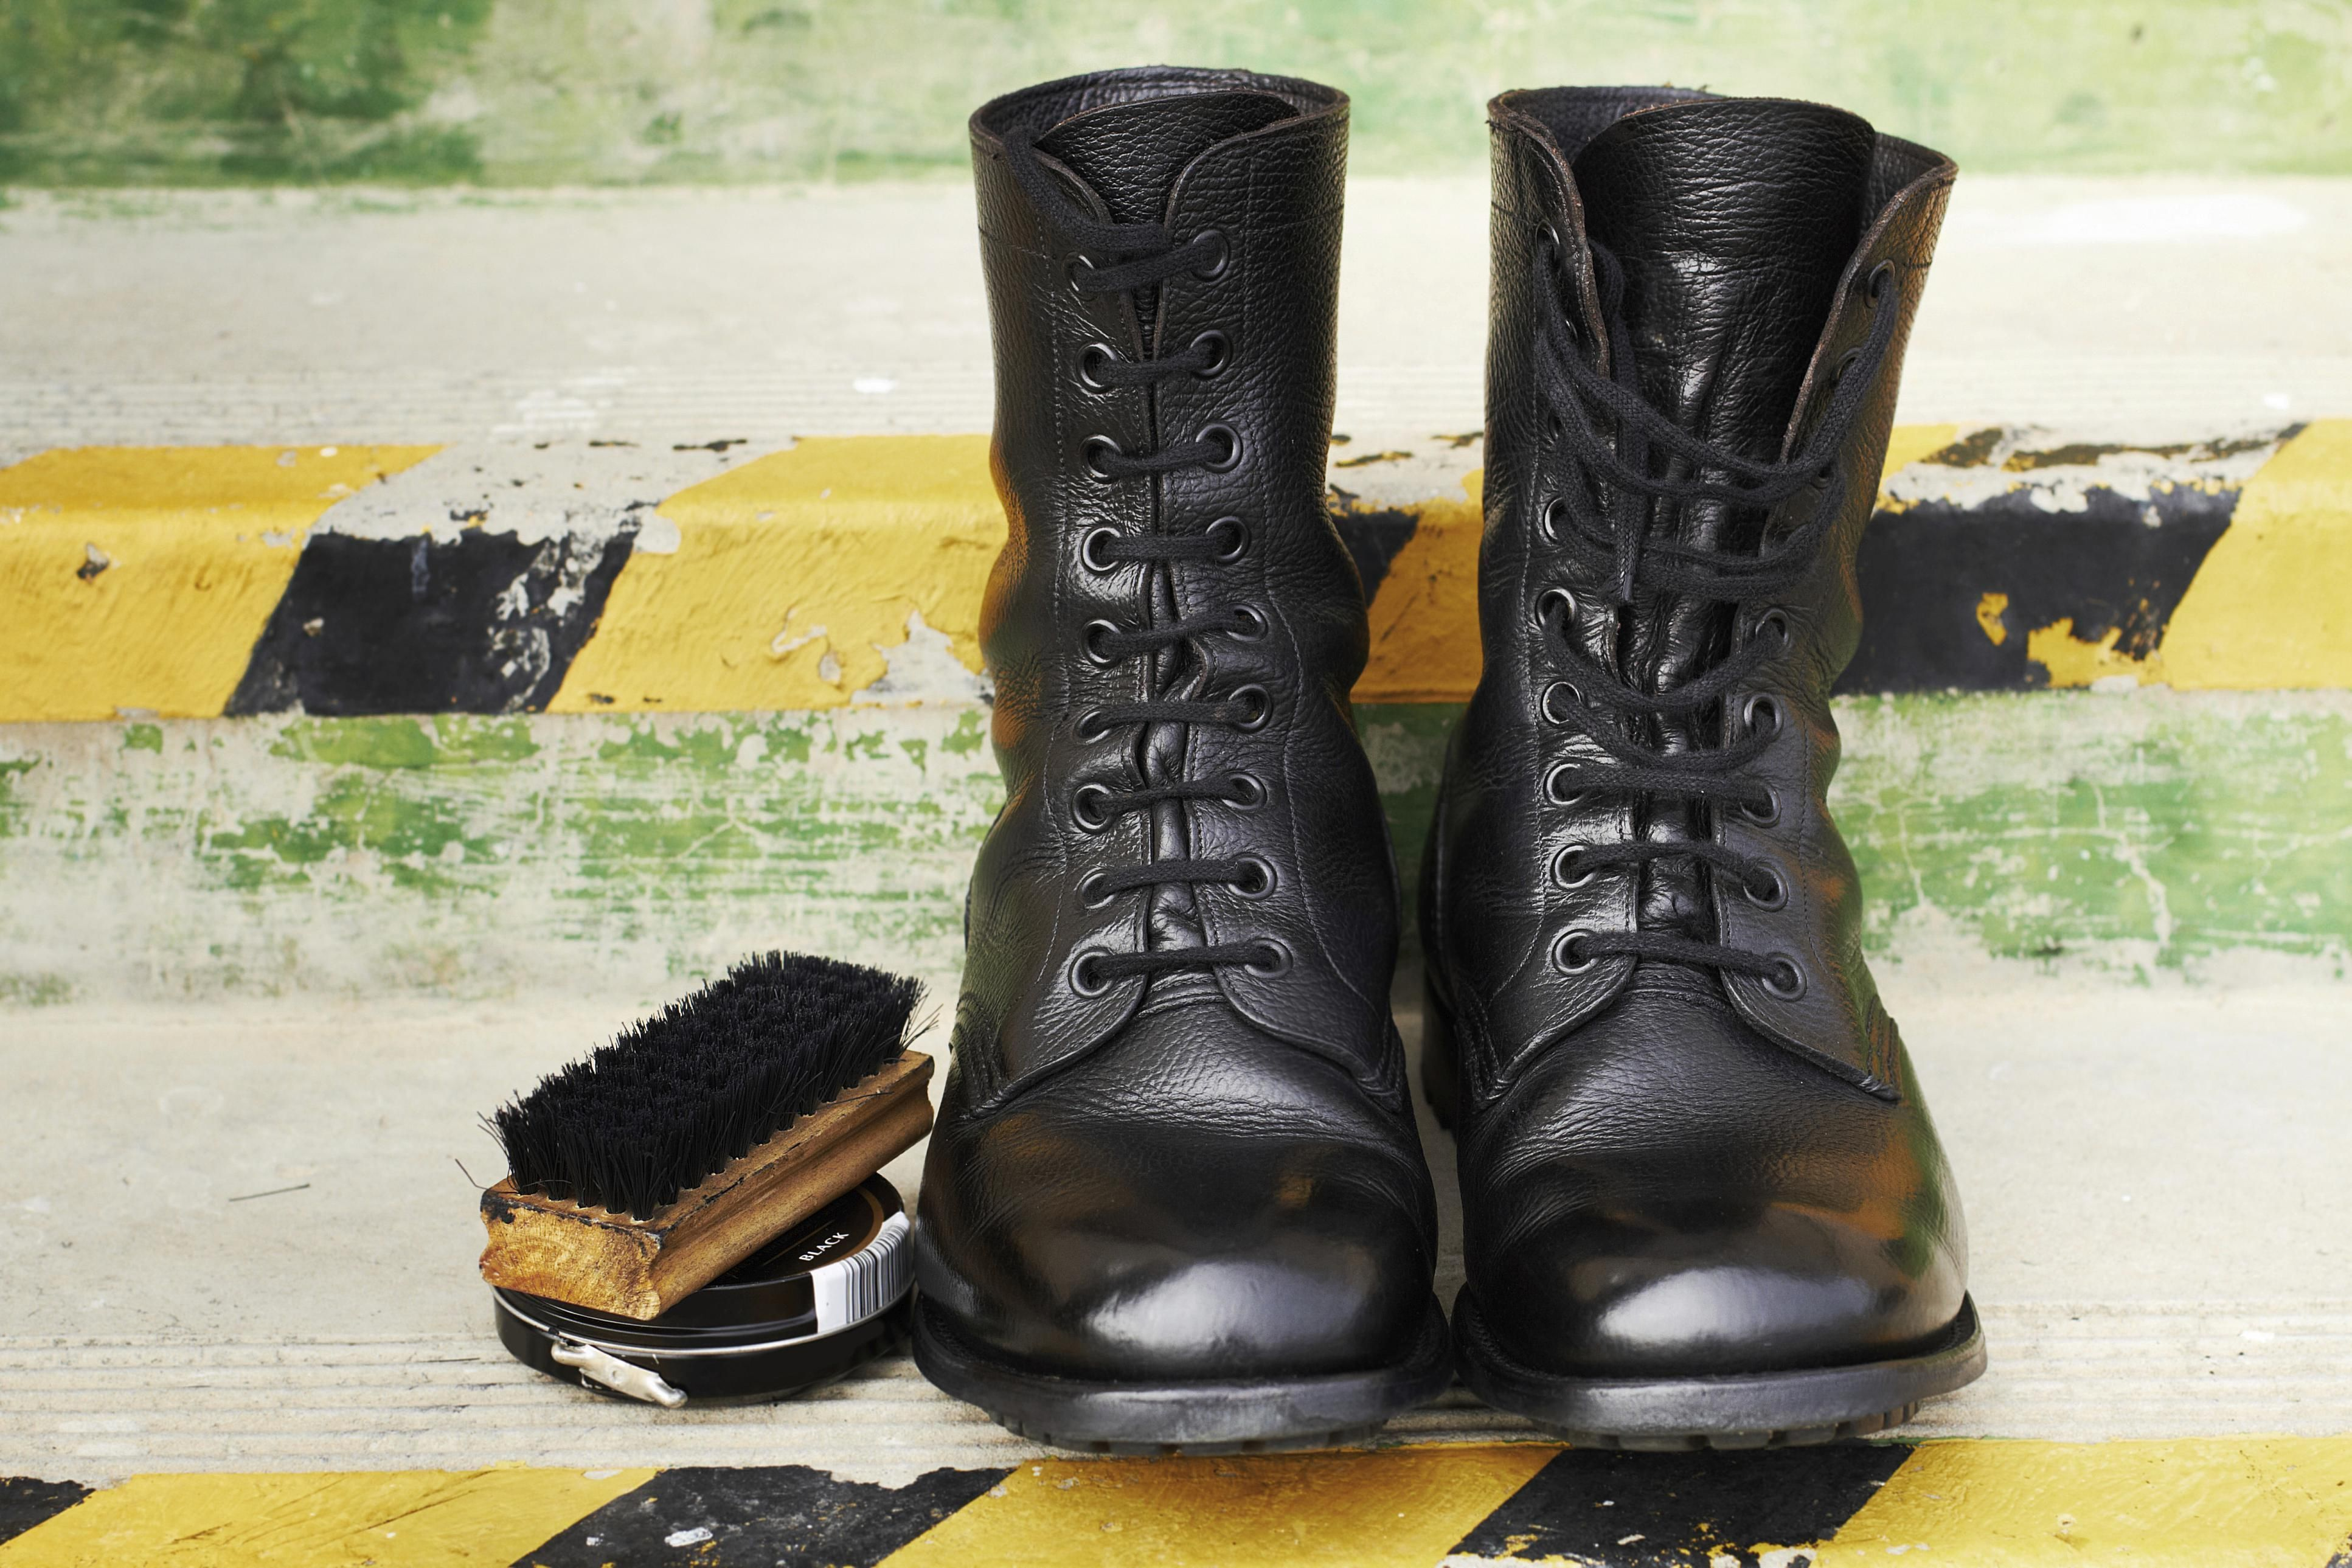 How To Remove Shoe Polish Stains From Clothes And Carpet Cleaning